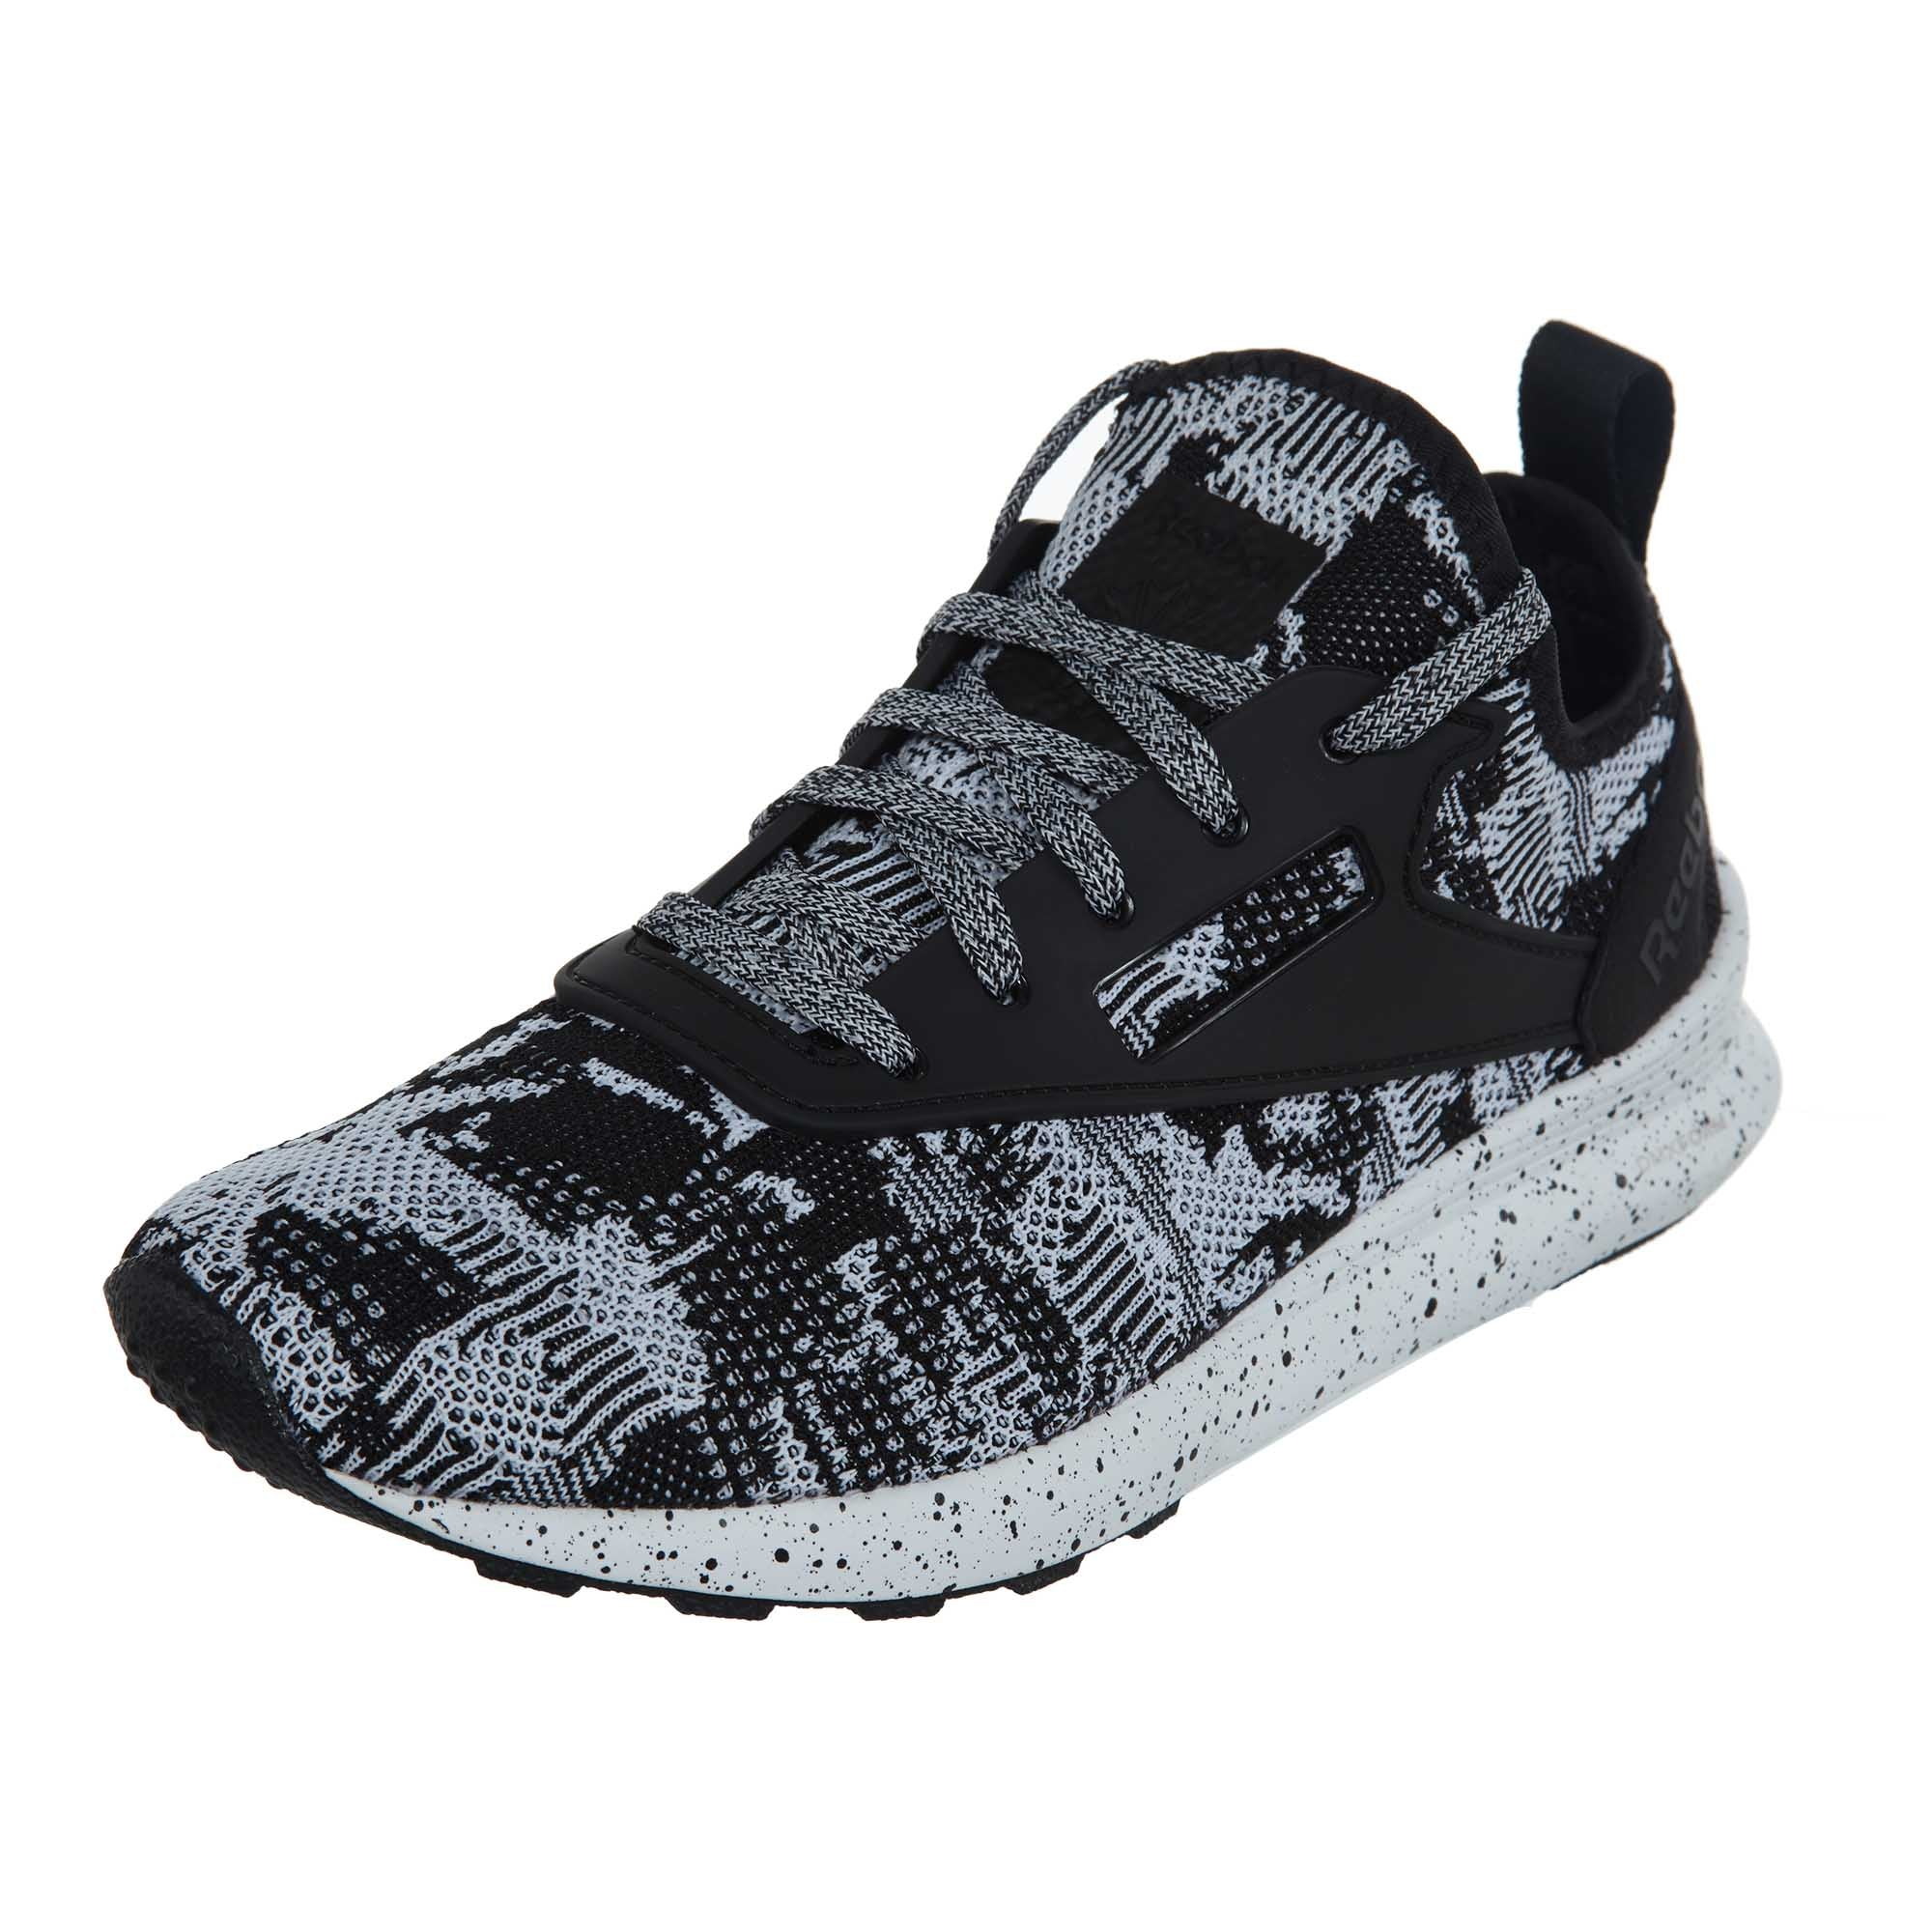 check out 05096 51234 Reebok Zoku Runner Hh Sneakers Womens Style   Bd6031 – Sneaker Experts